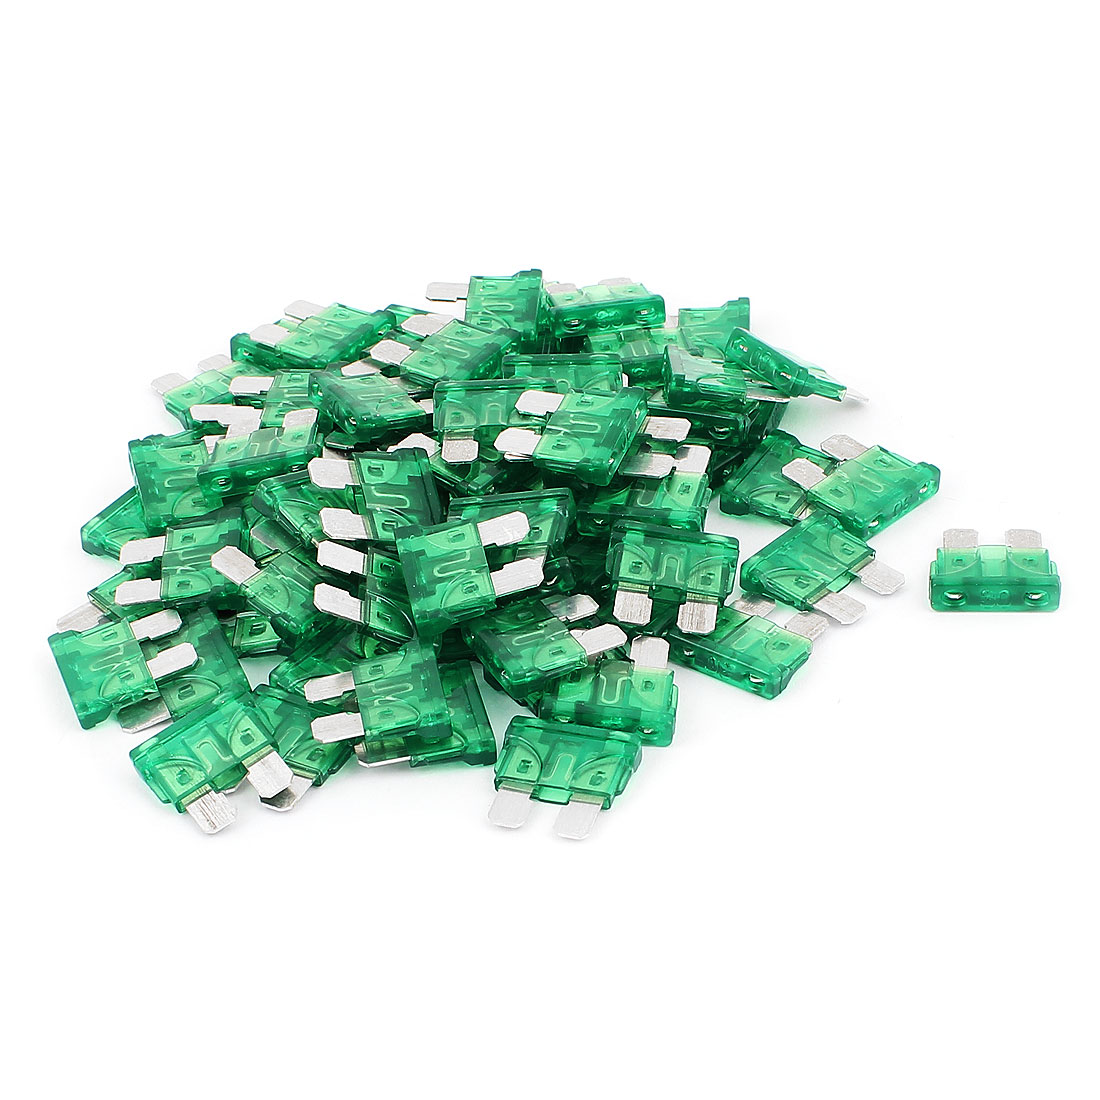 75pcs Mini Automotive Motorcycle Car Caravan SUV Boat ATC Blade Fuses 30A Green